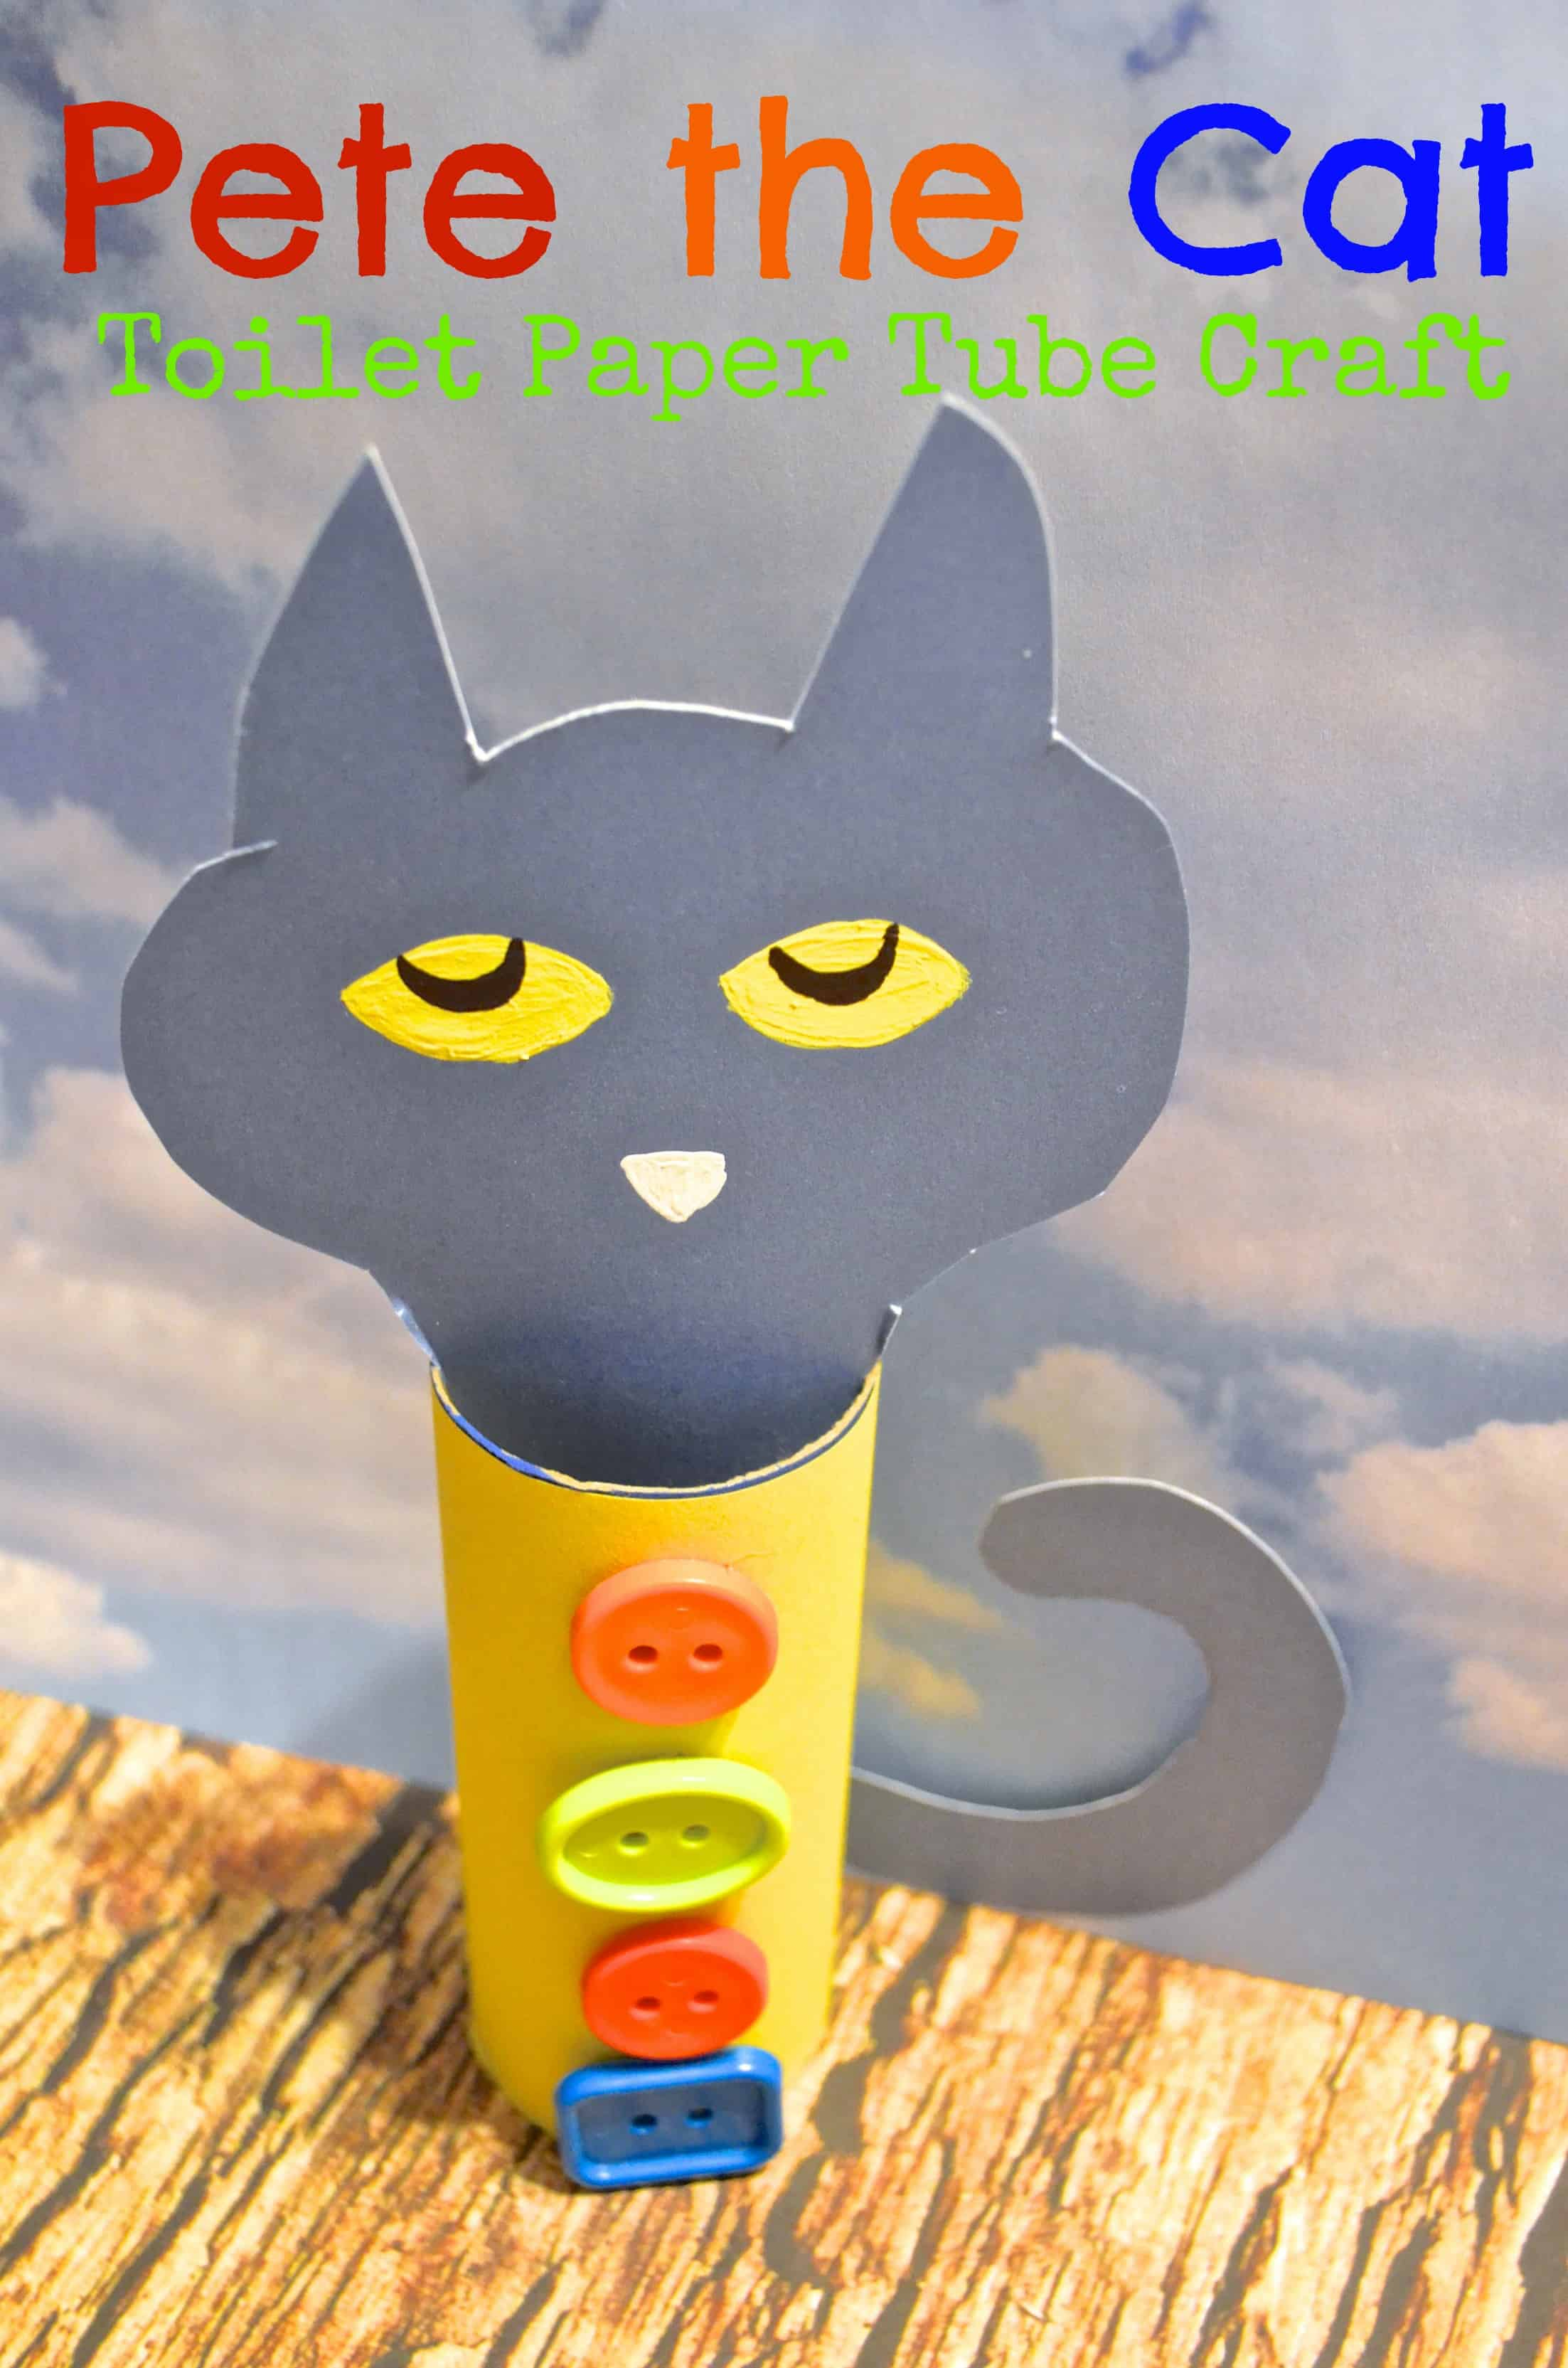 Pete the cat toilet paper tube craft for kids for Cat crafts for toddlers